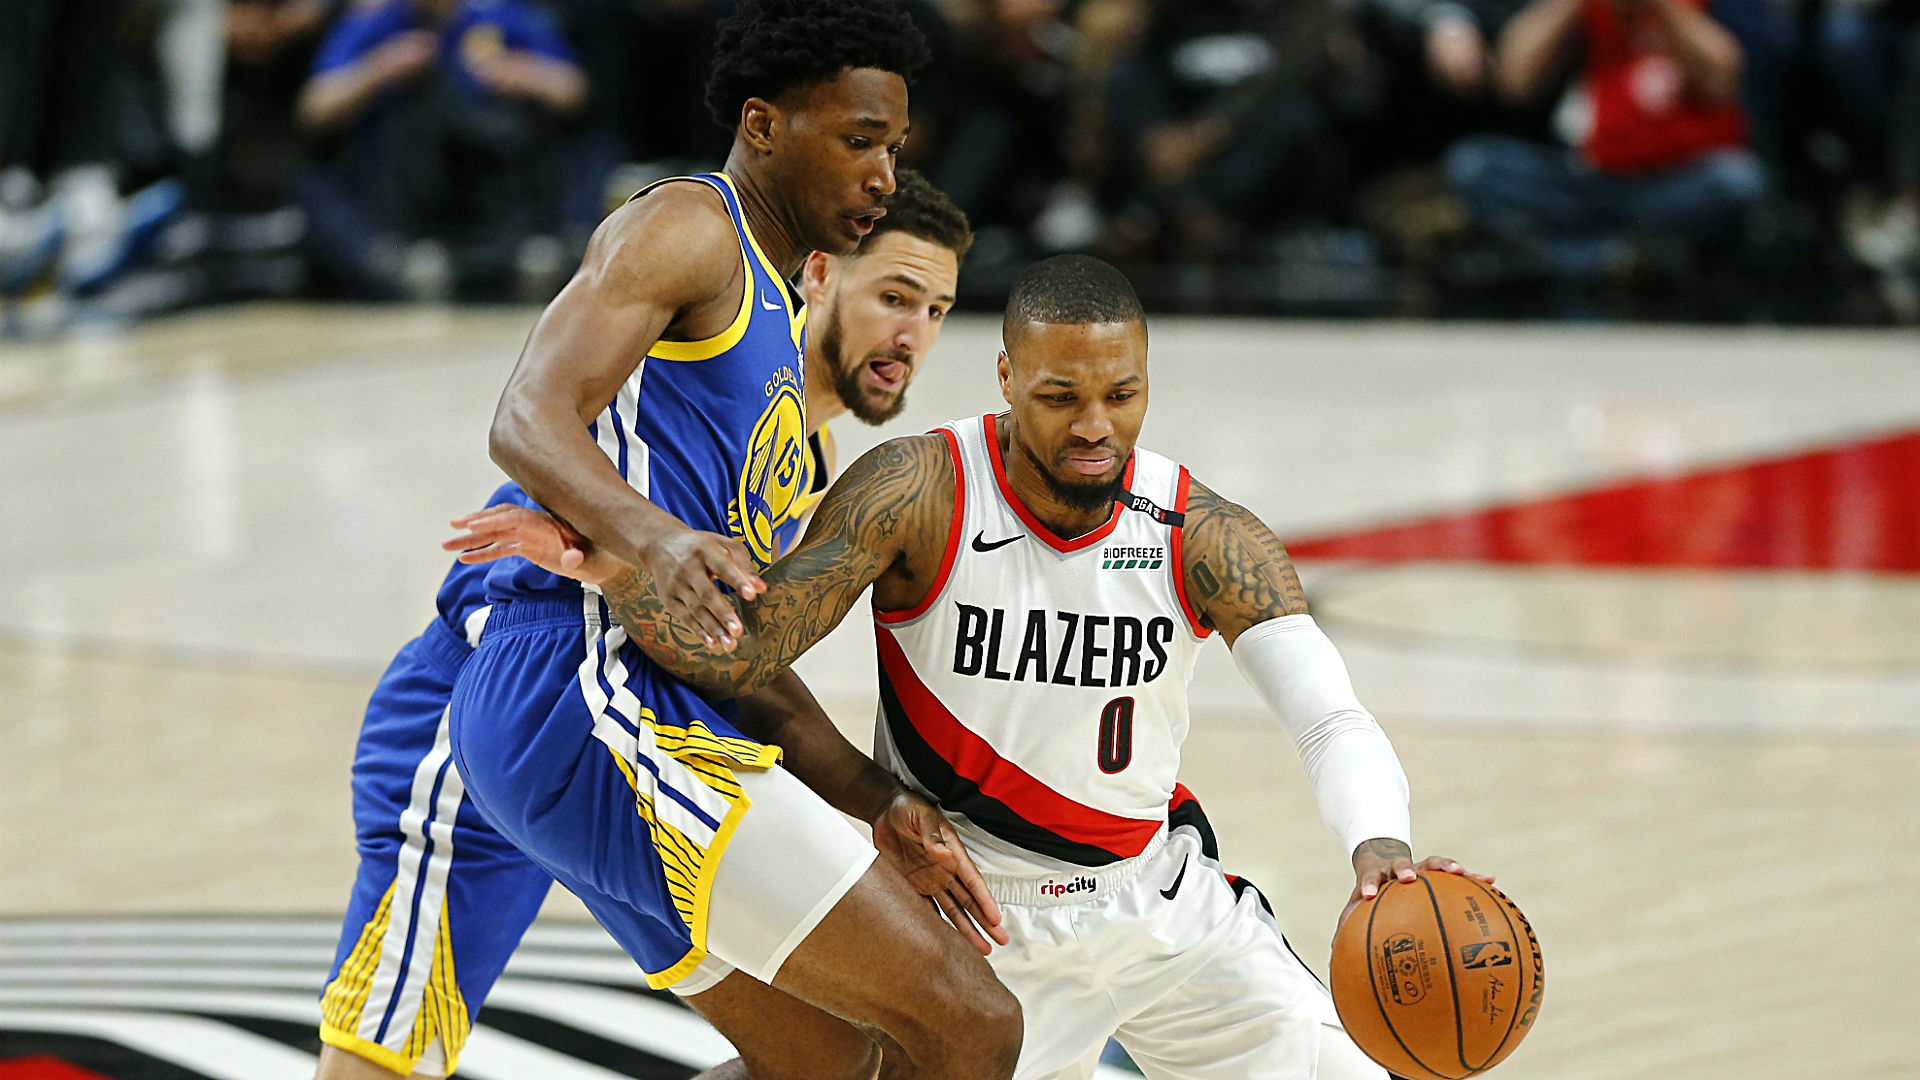 trail blazers vs warriors - photo #32